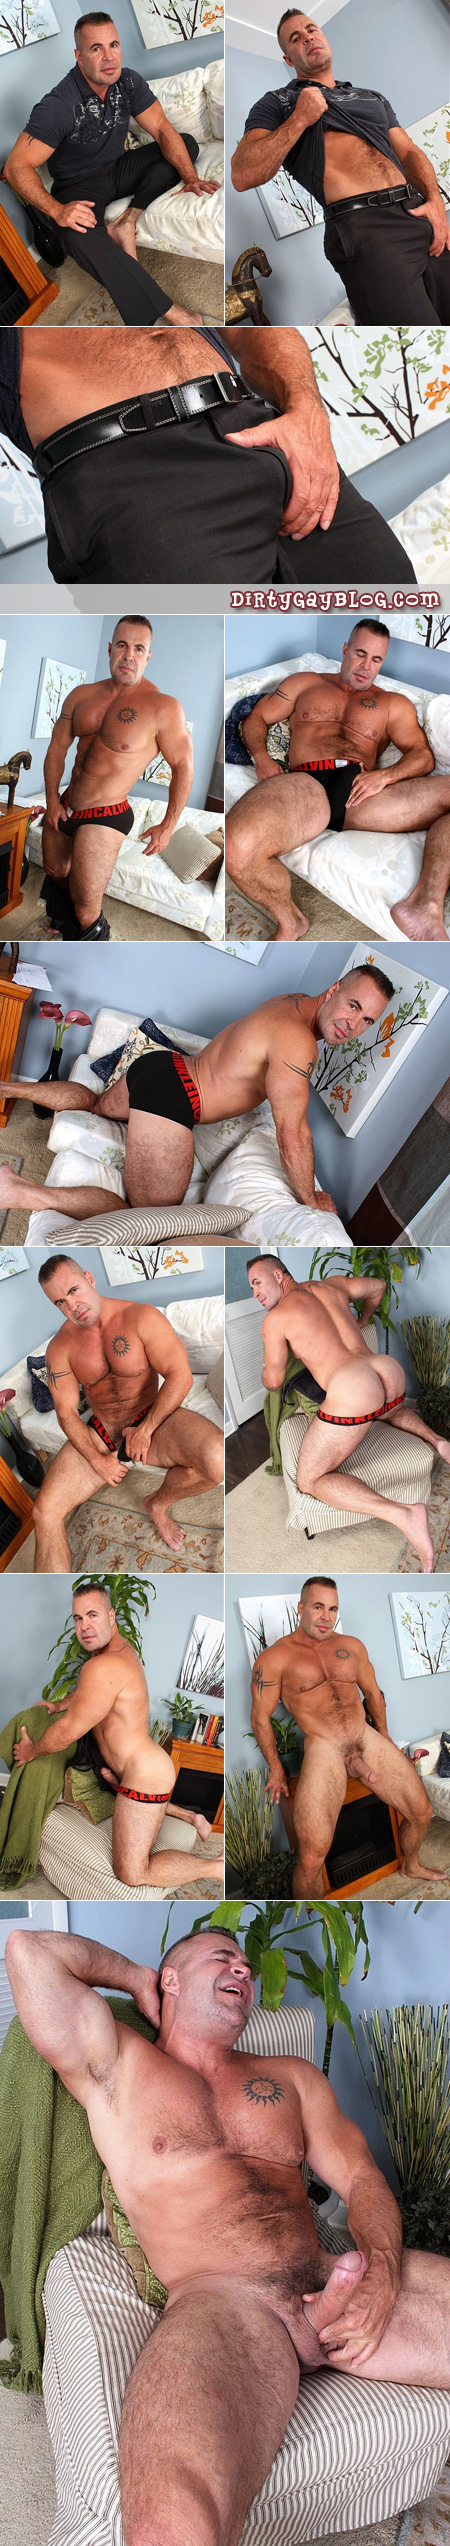 bbw escorts belfast gay muscular